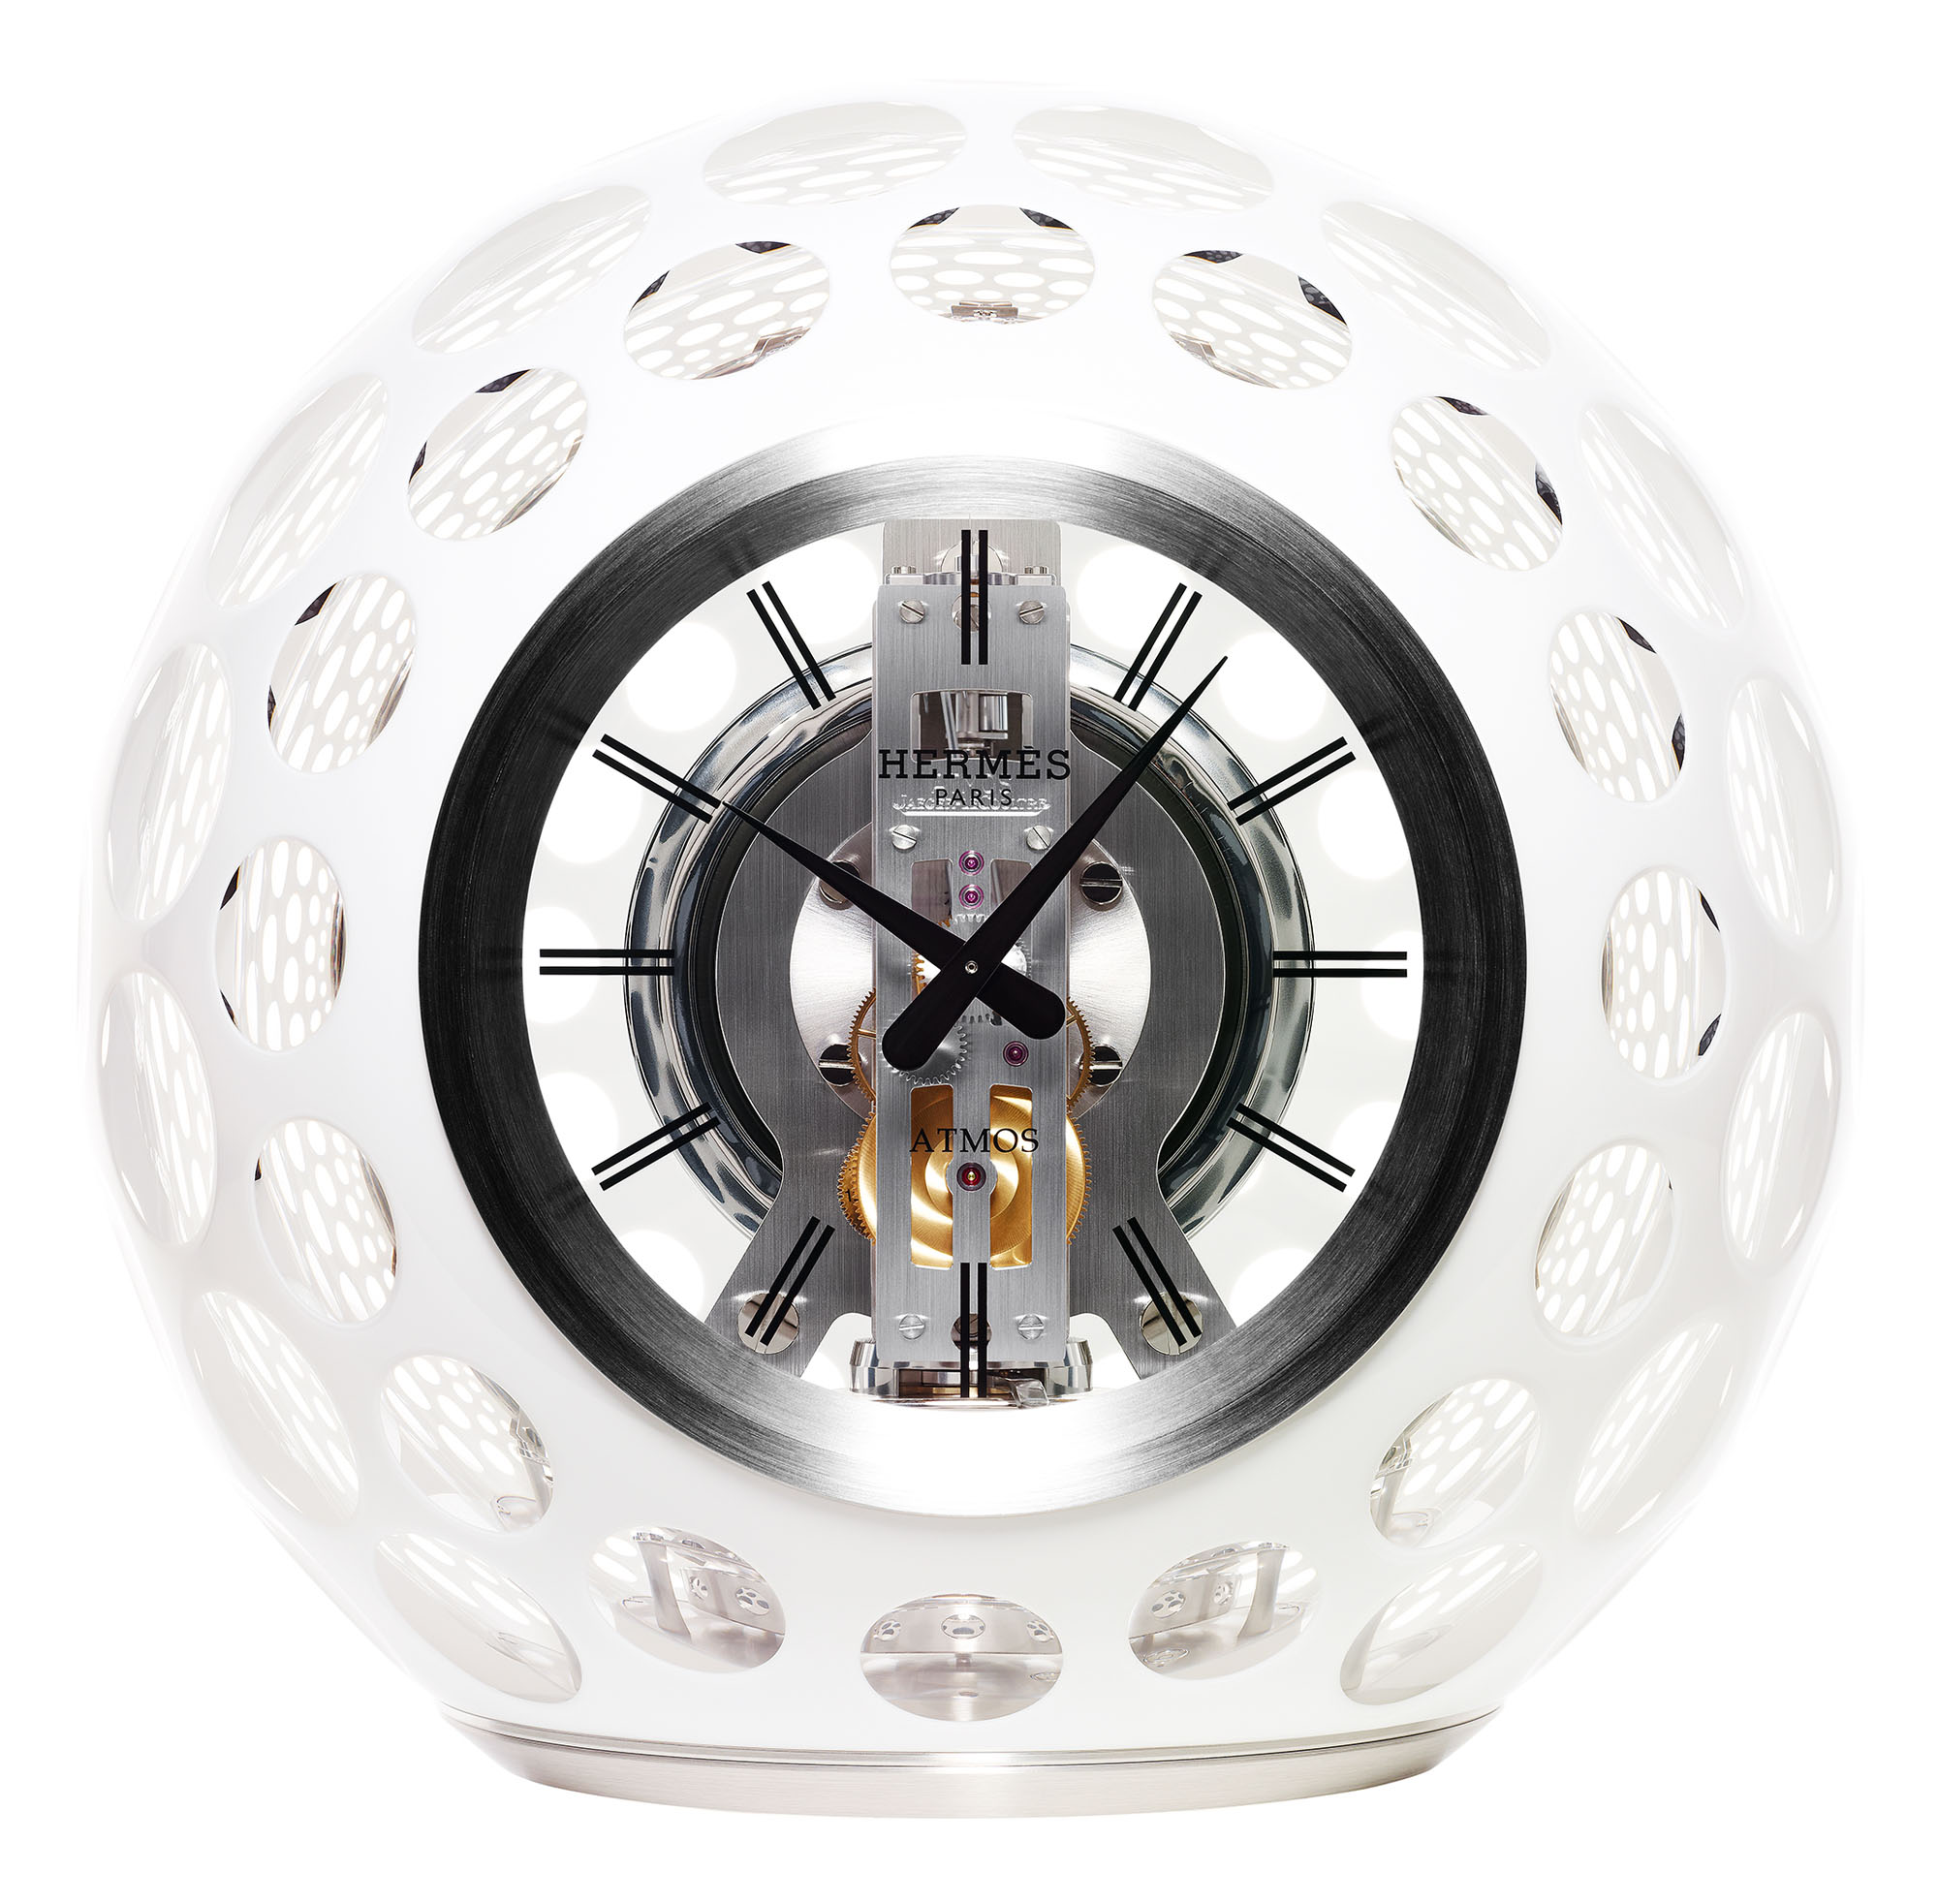 Hermes Atmos Clock by Jaeger-LeCoultre